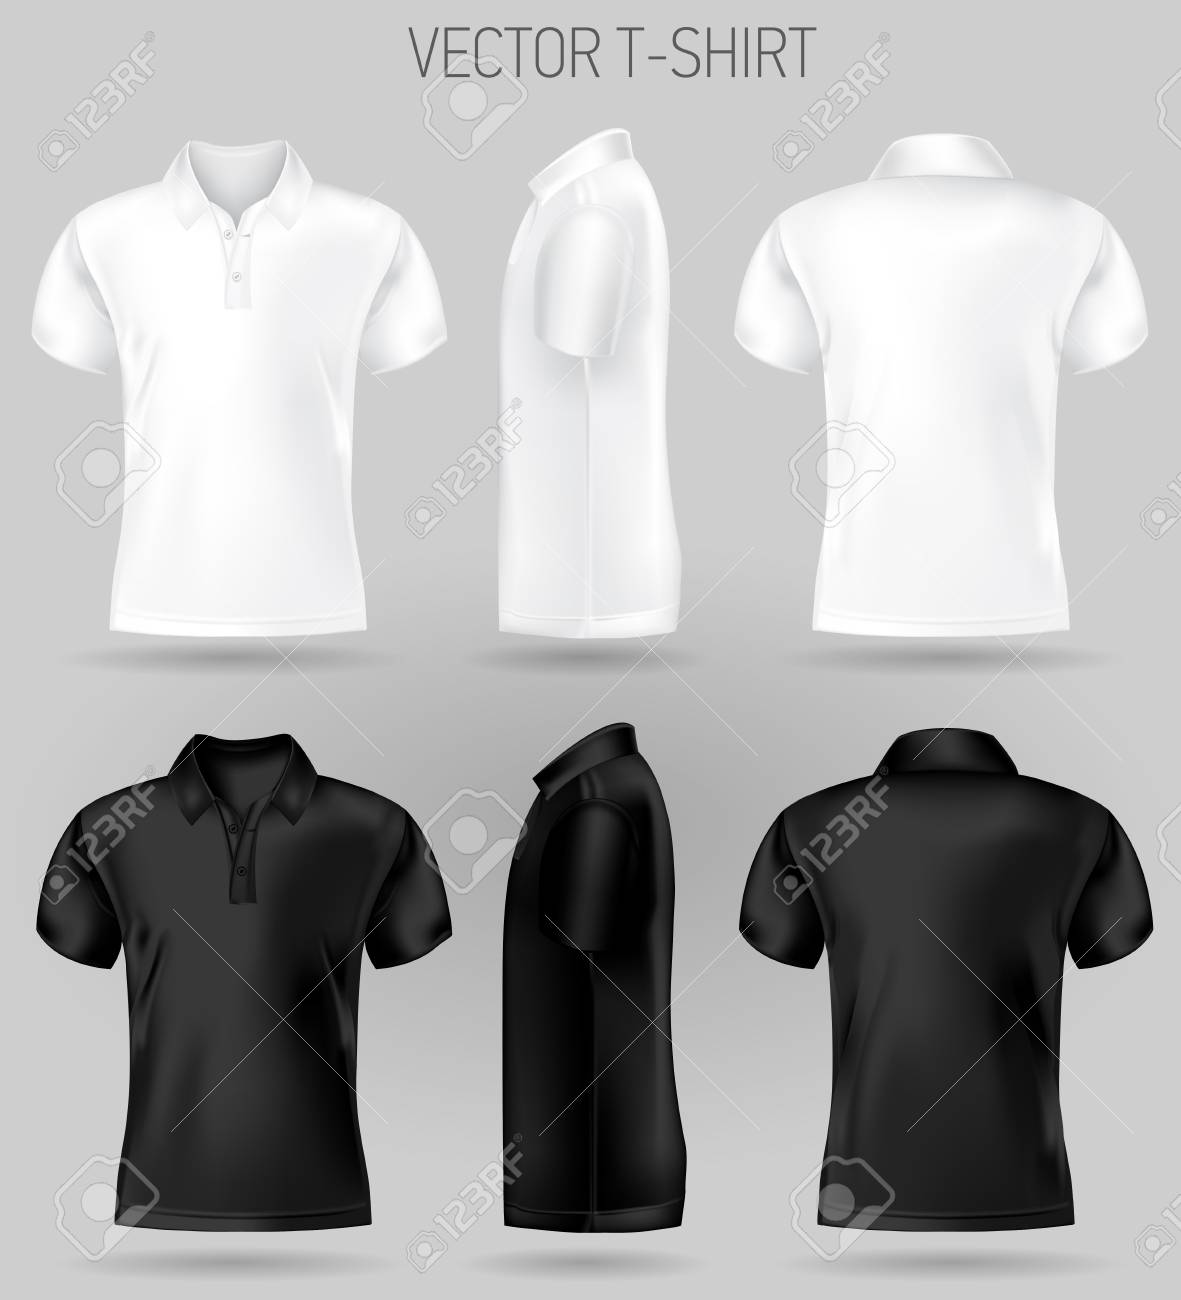 Black And White Short Sleeve Polo Shirt Design Templates Front Royalty Free Cliparts Vectors And Stock Illustration Image 123120074